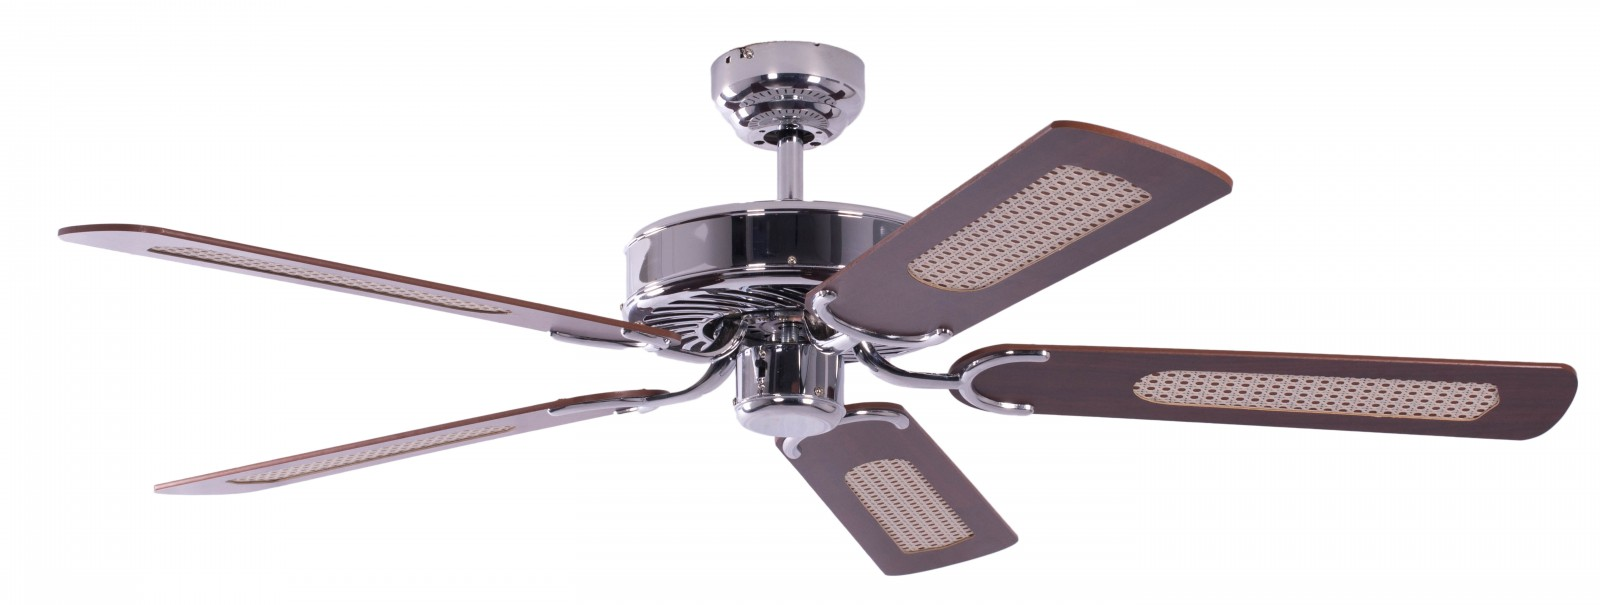 Ceiling fan Potkuri